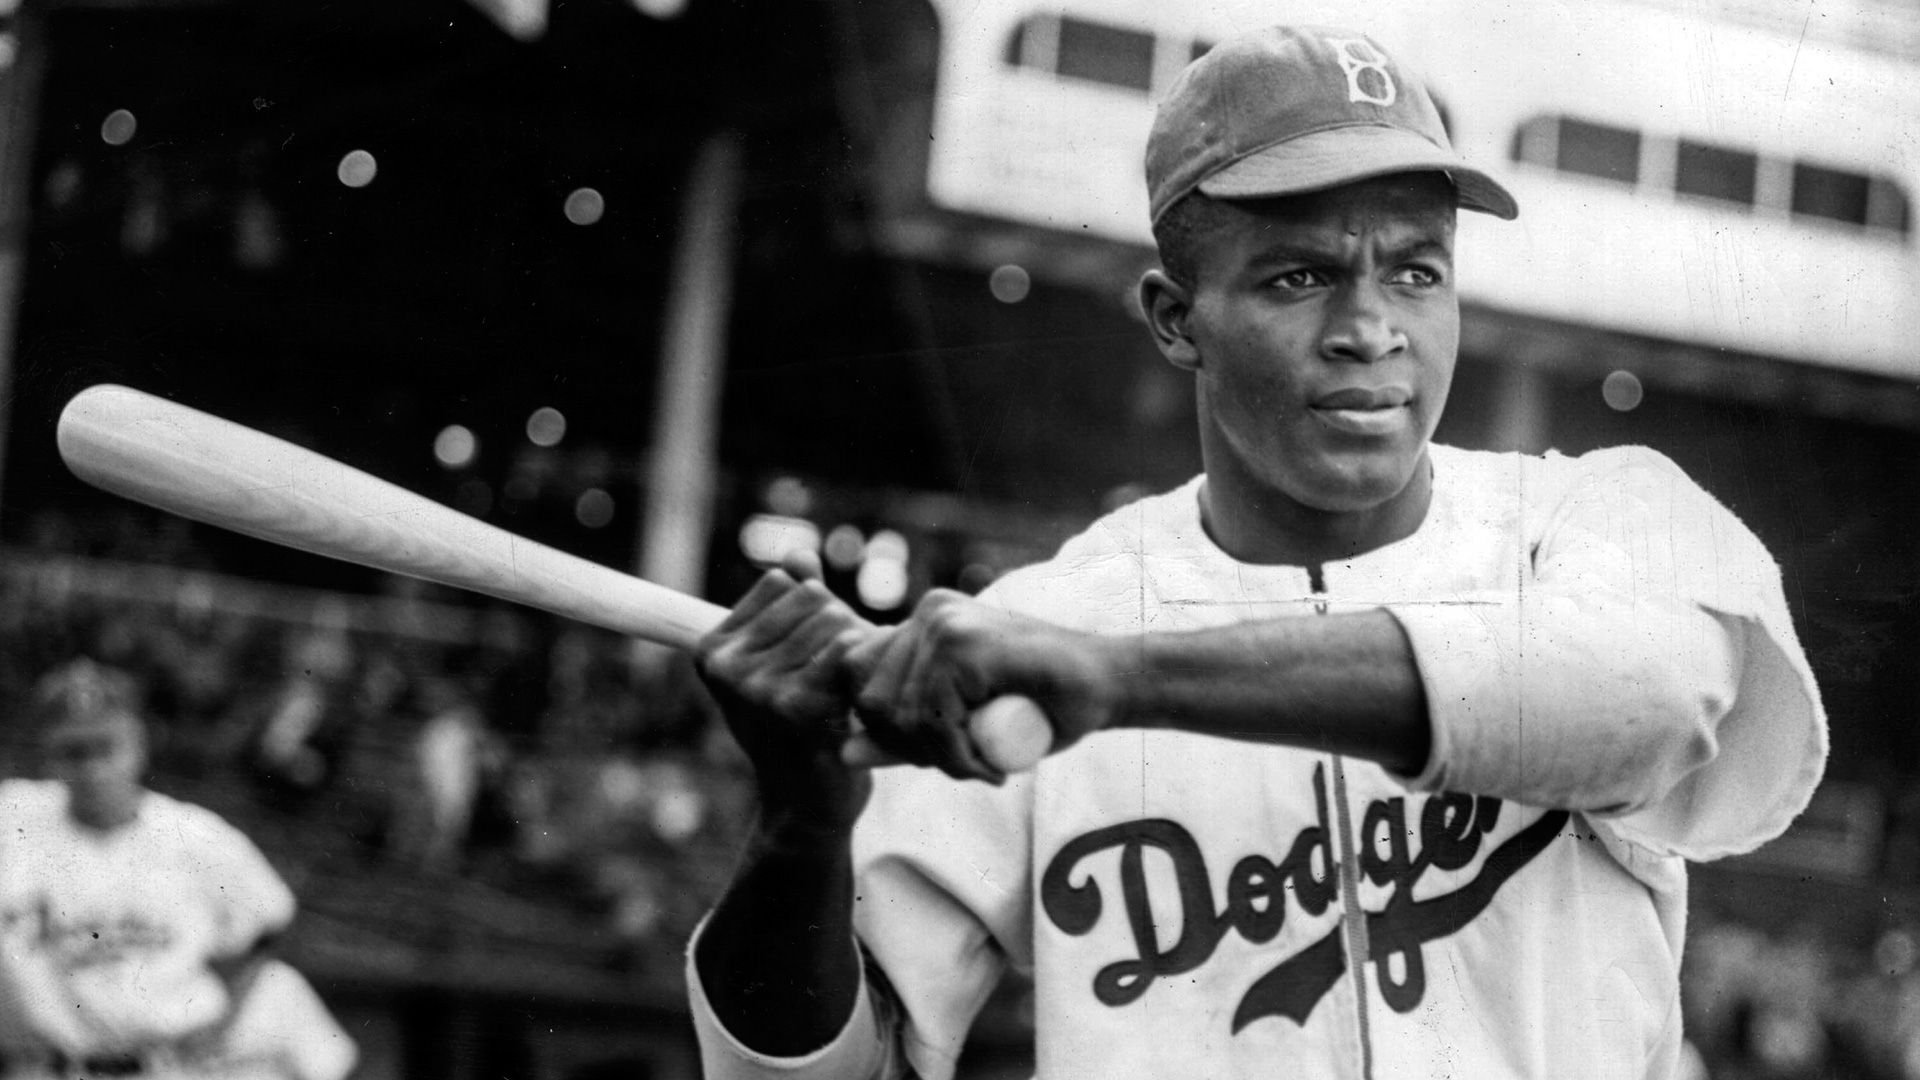 jackie robinson breaking the racial barriers Students analyze letters and other documents relating to jackie robinson's breaking of the racial barrier in professional baseball, leading to deeper exploration of racism in the united states both in and out of sports.